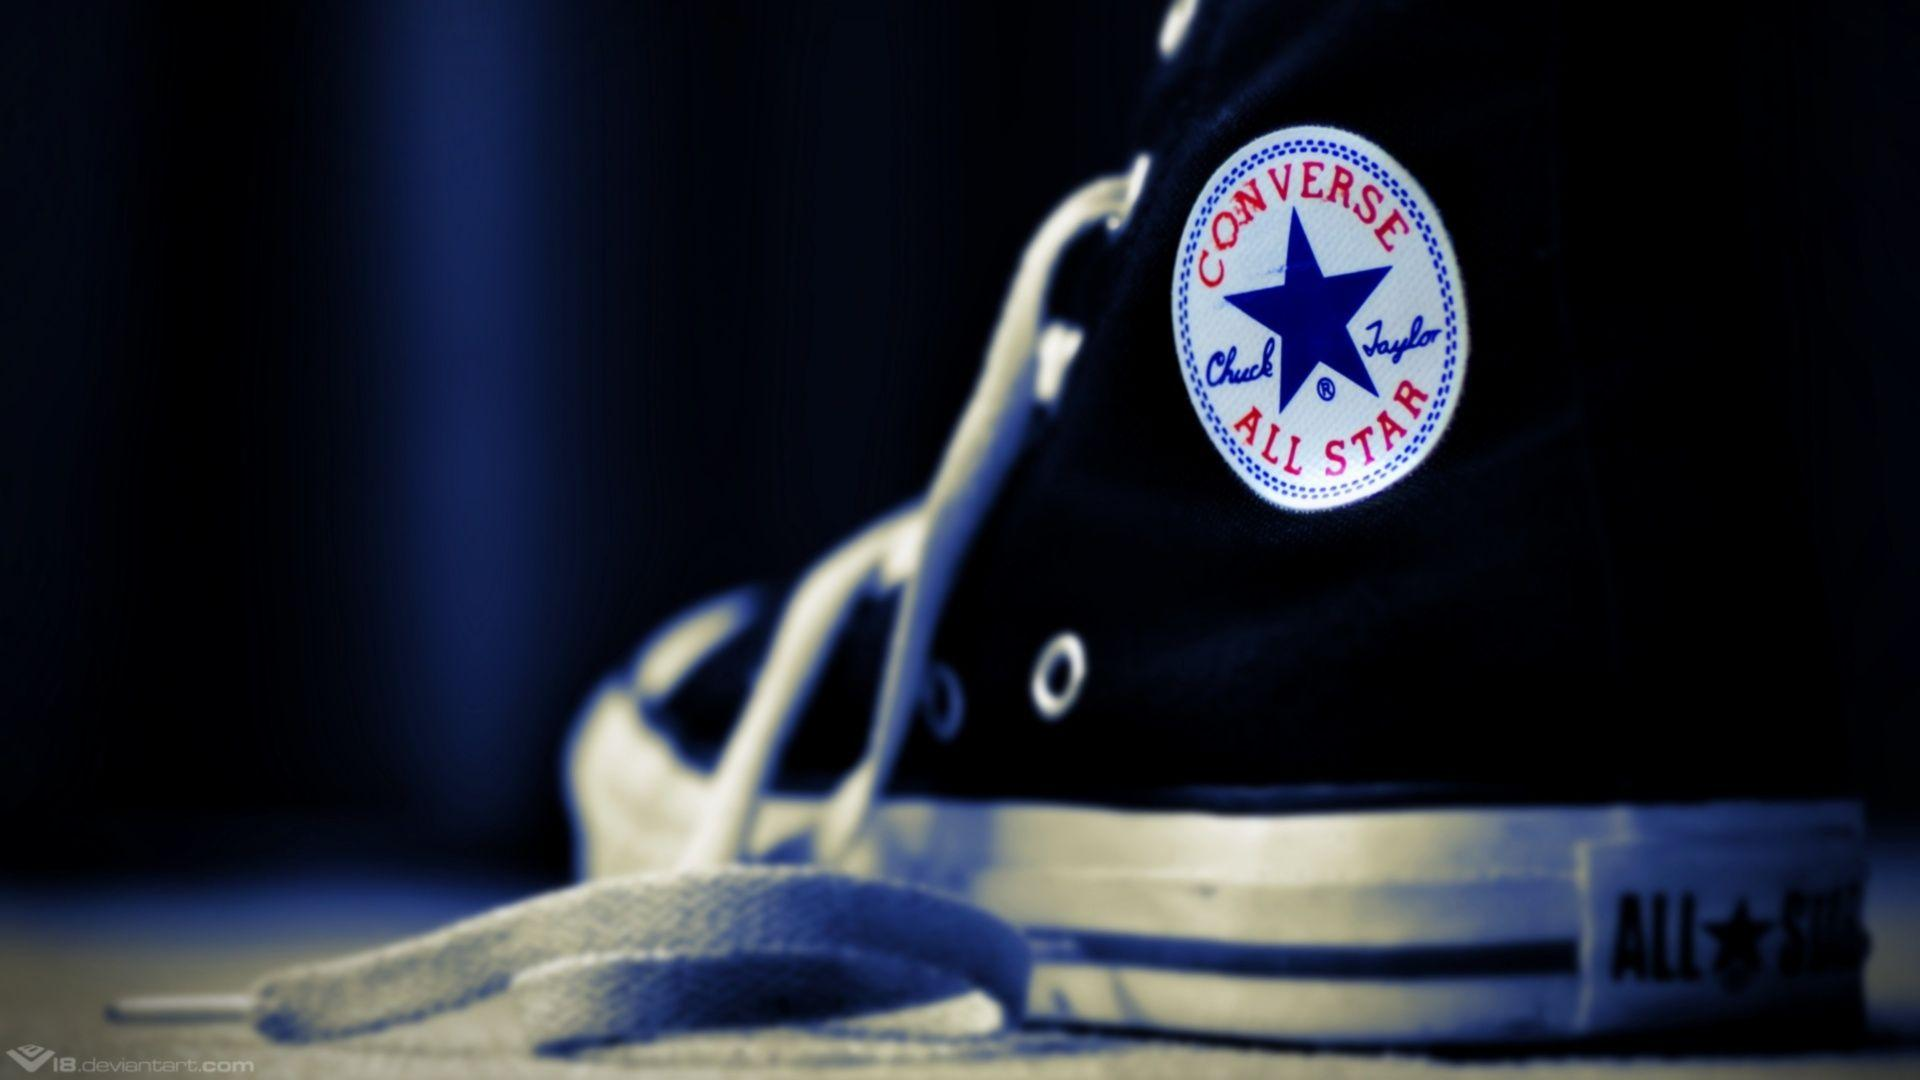 615c762c7418 Converse Wallpapers HD - Wallpaper Cave